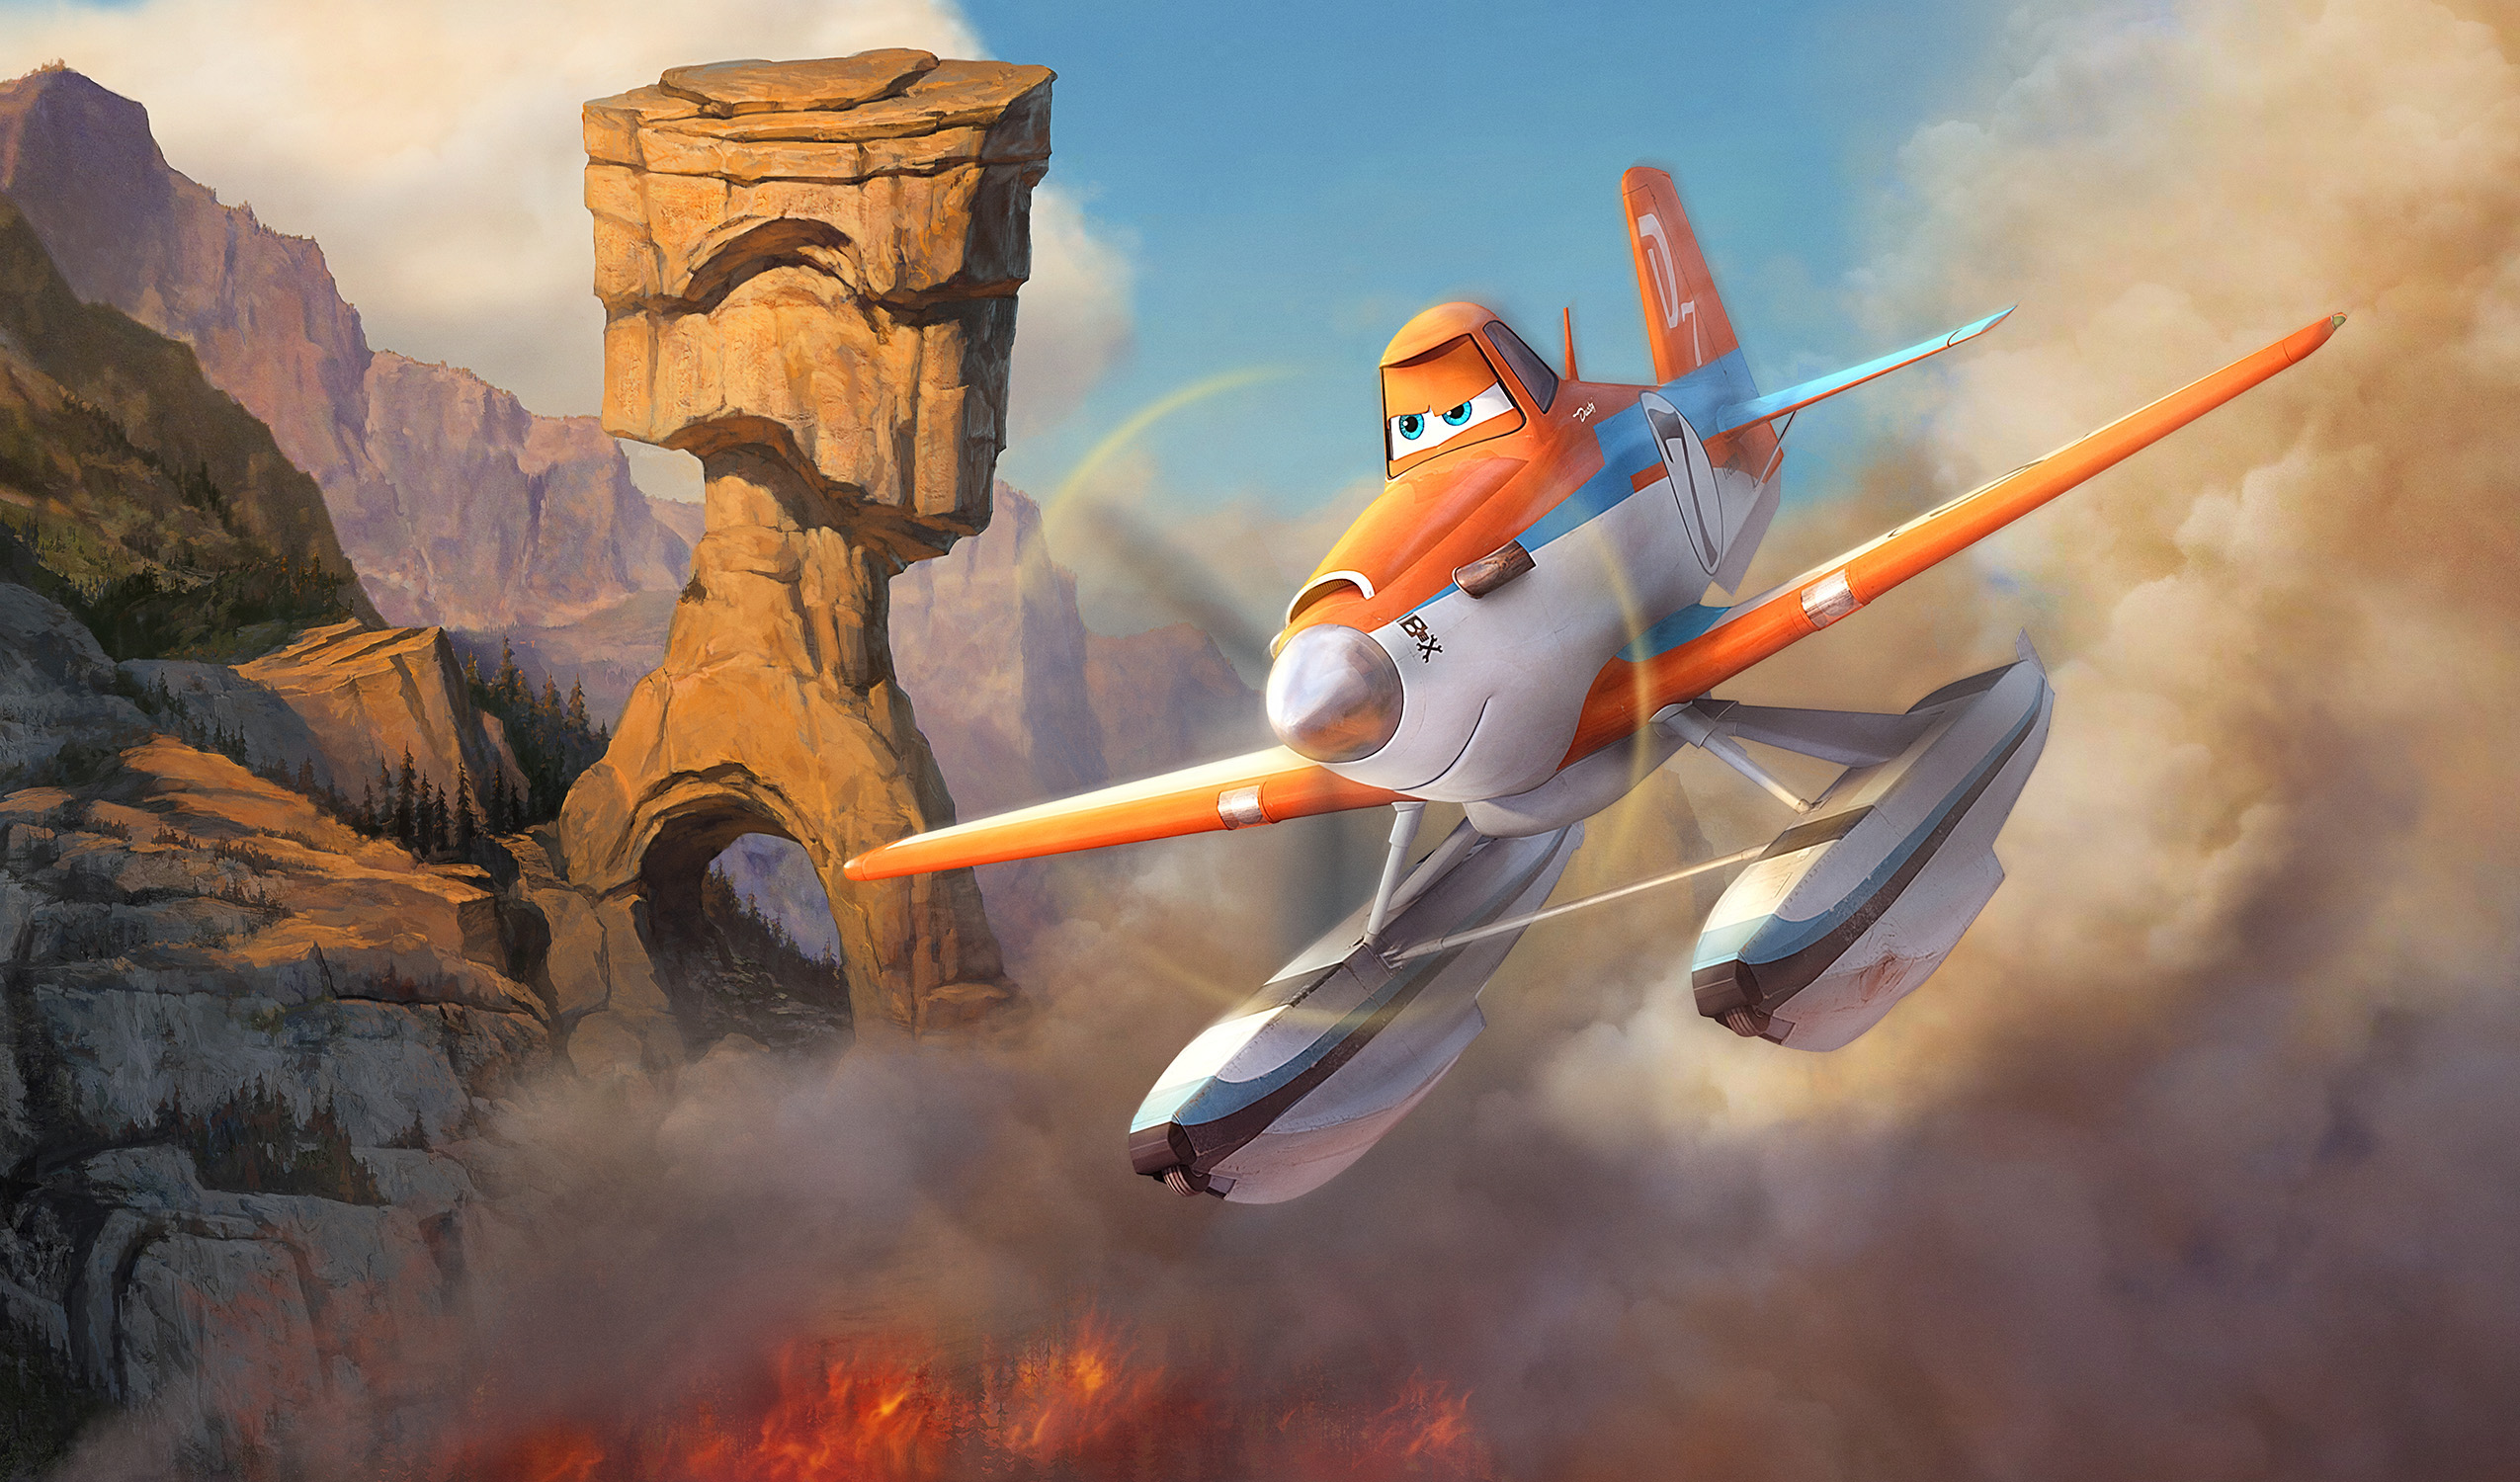 New Images from Disney's BIG HERO 6, FROZEN, PLANES: FIRE & RESCUE ...